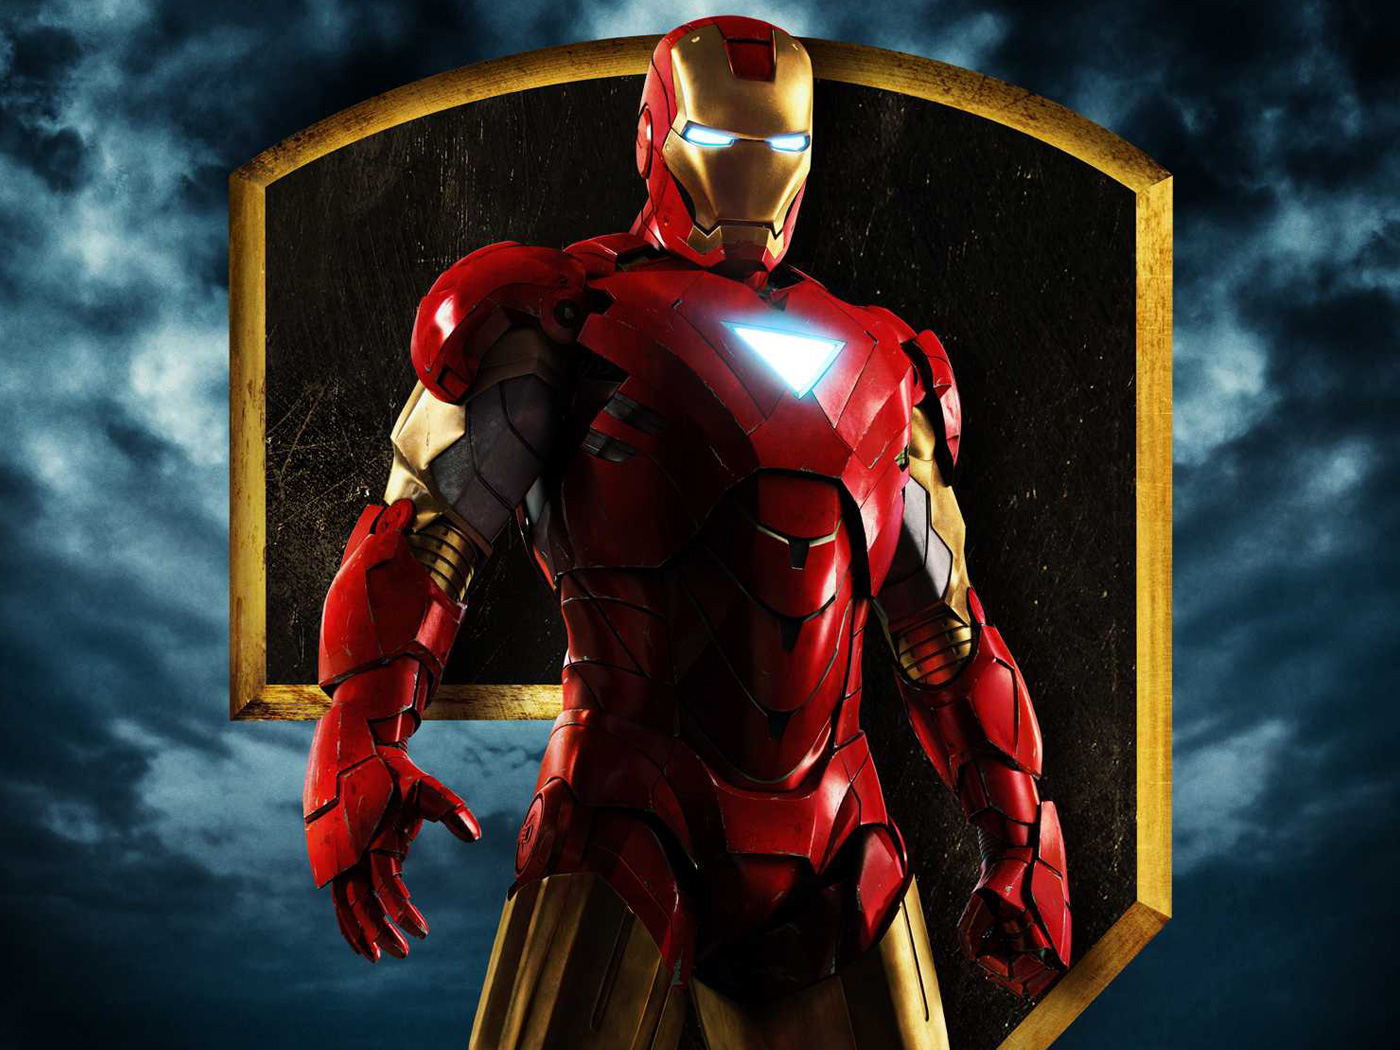 2010 Iron Man 2 Movie Wallpapers HD Wallpapers 1400x1050